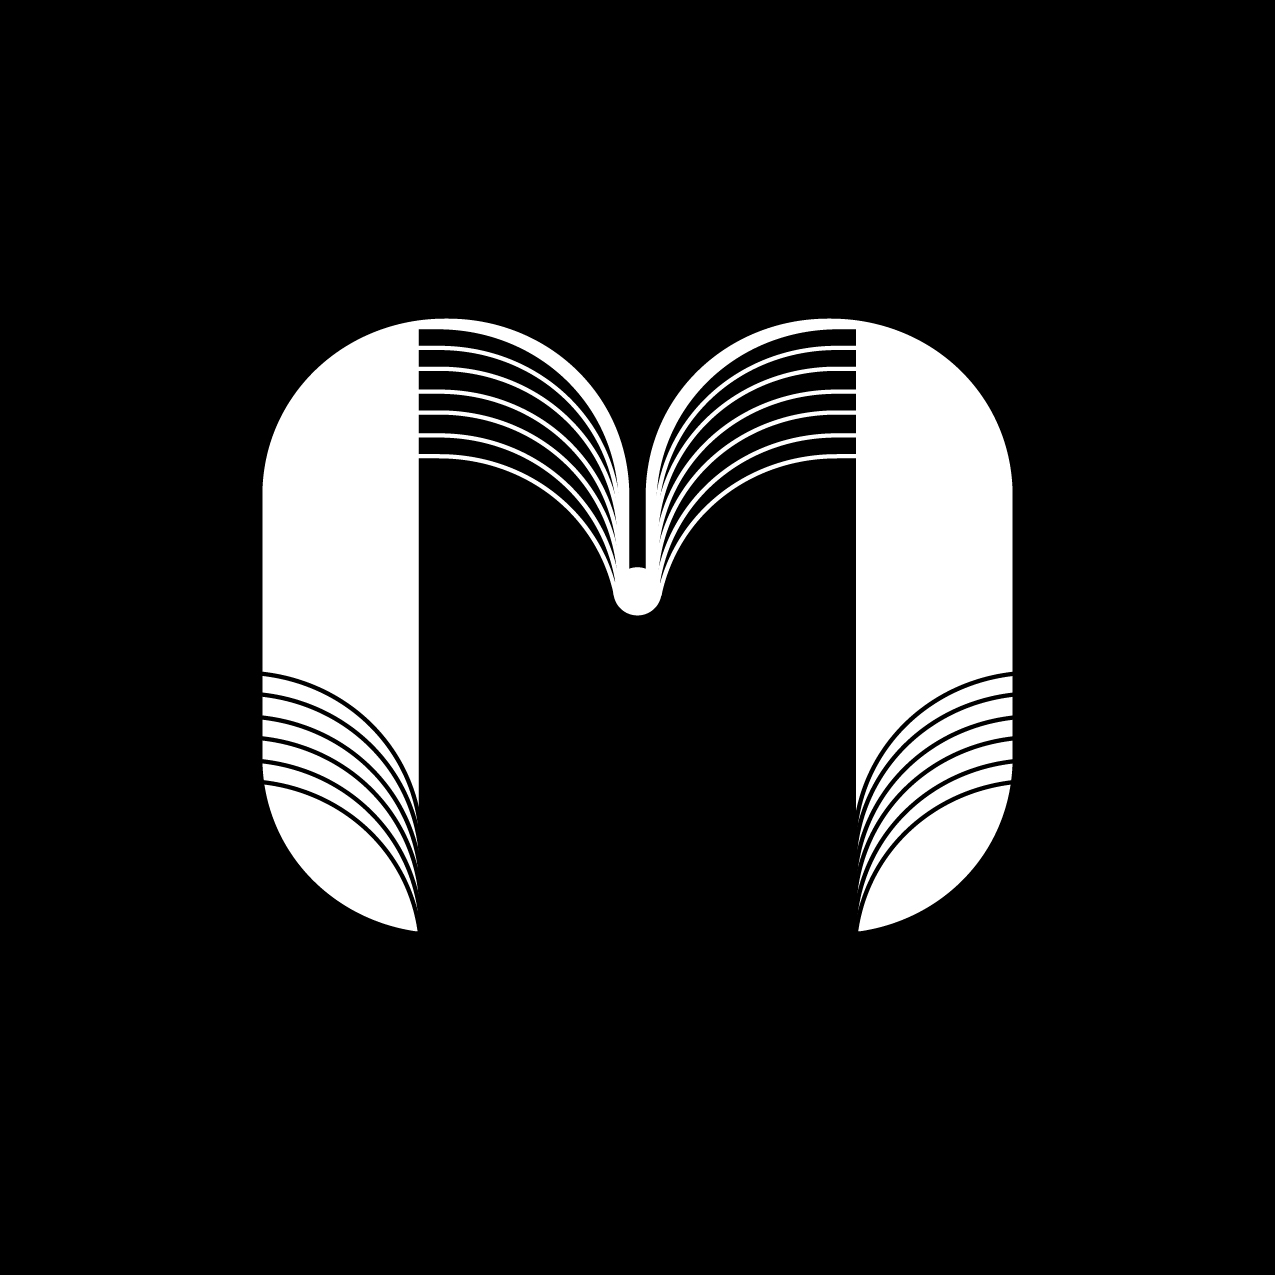 Letter M9 Design by Furia